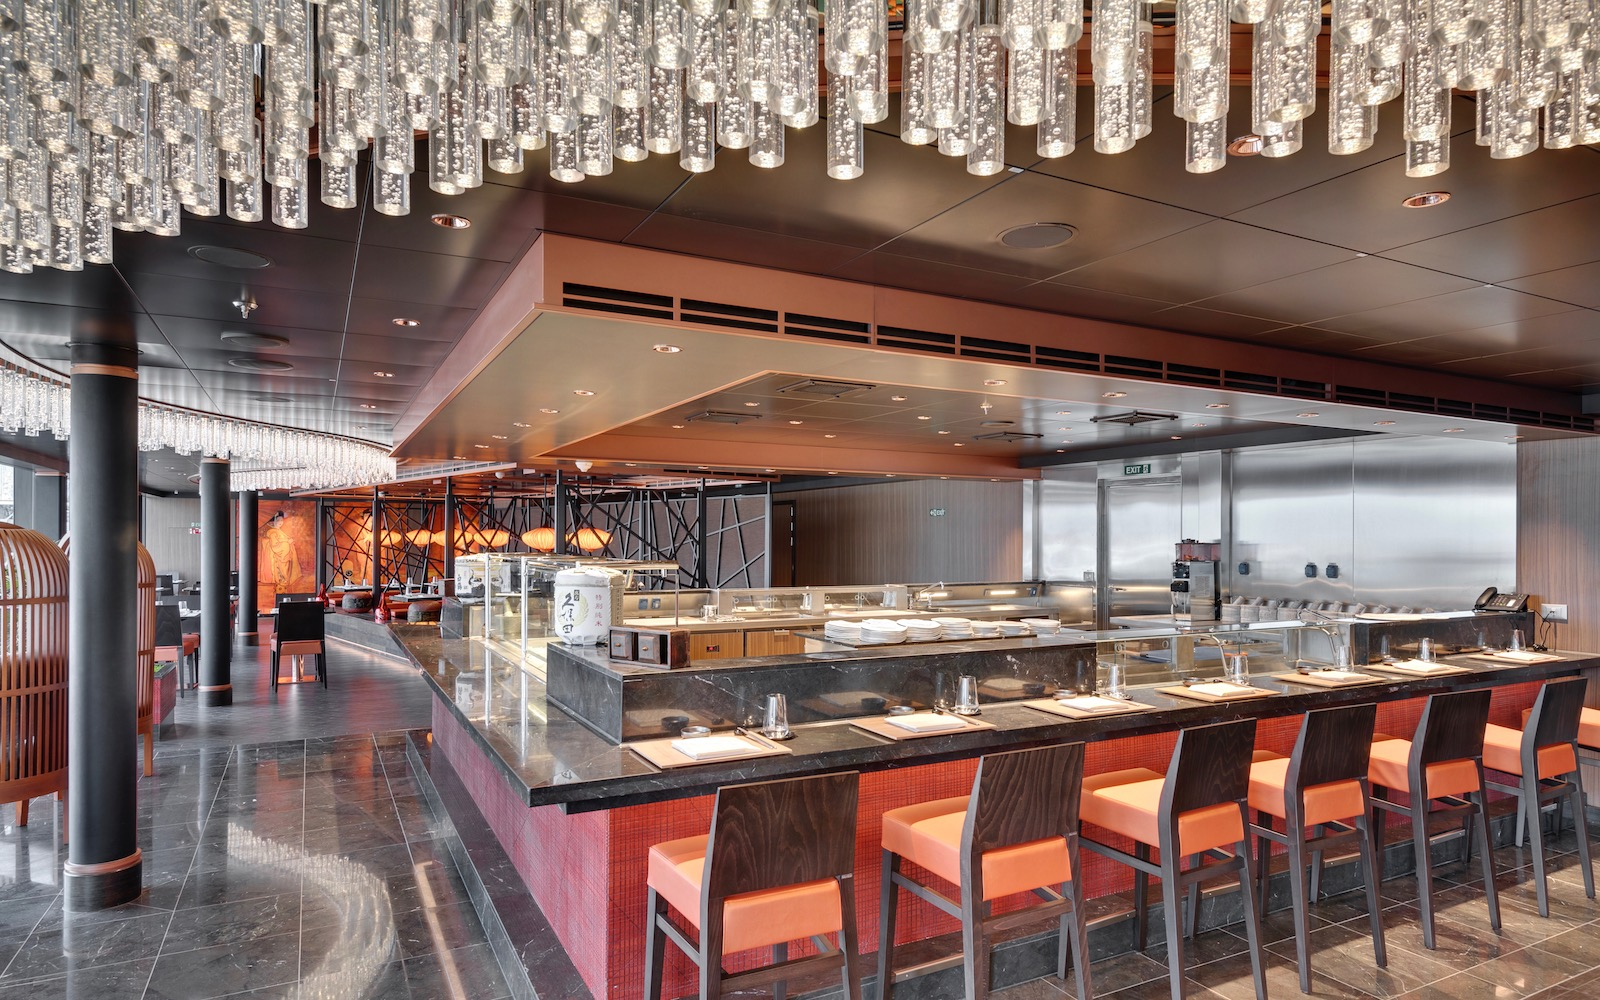 Asian Market Kitchen by Roy Yamaguchi on MSC Seaview